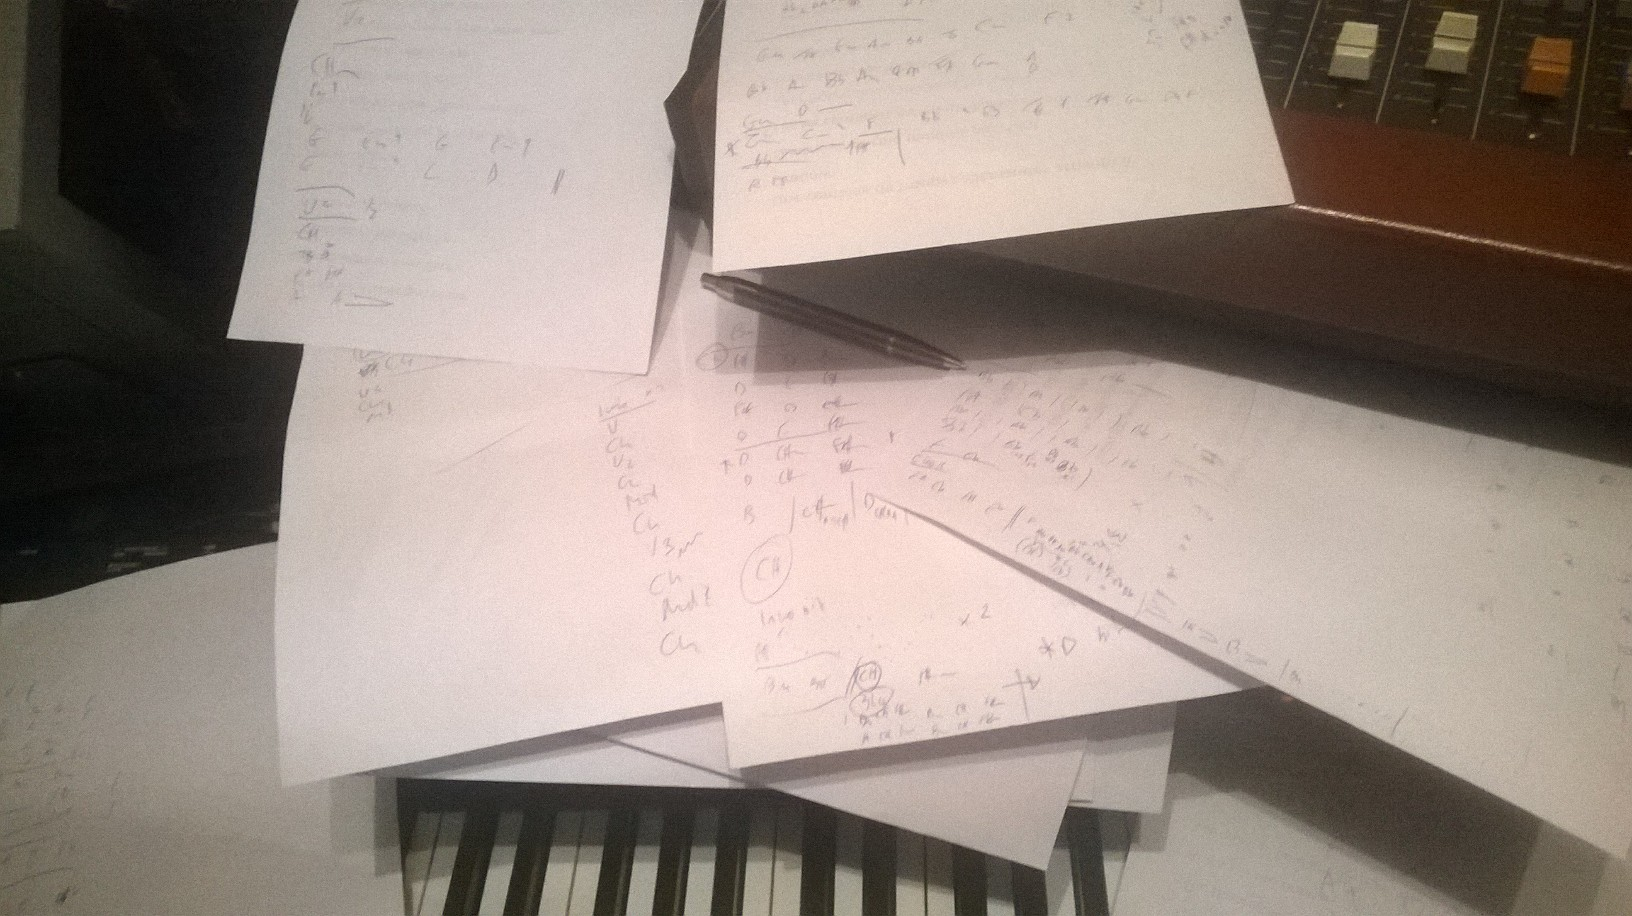 Bespoke Piano Reocording -A productive day at Vintage Keys - my crib notes for 7 pieces of music - using my mind, ears and a bit of pianistic license. Who needs sheet music eh?